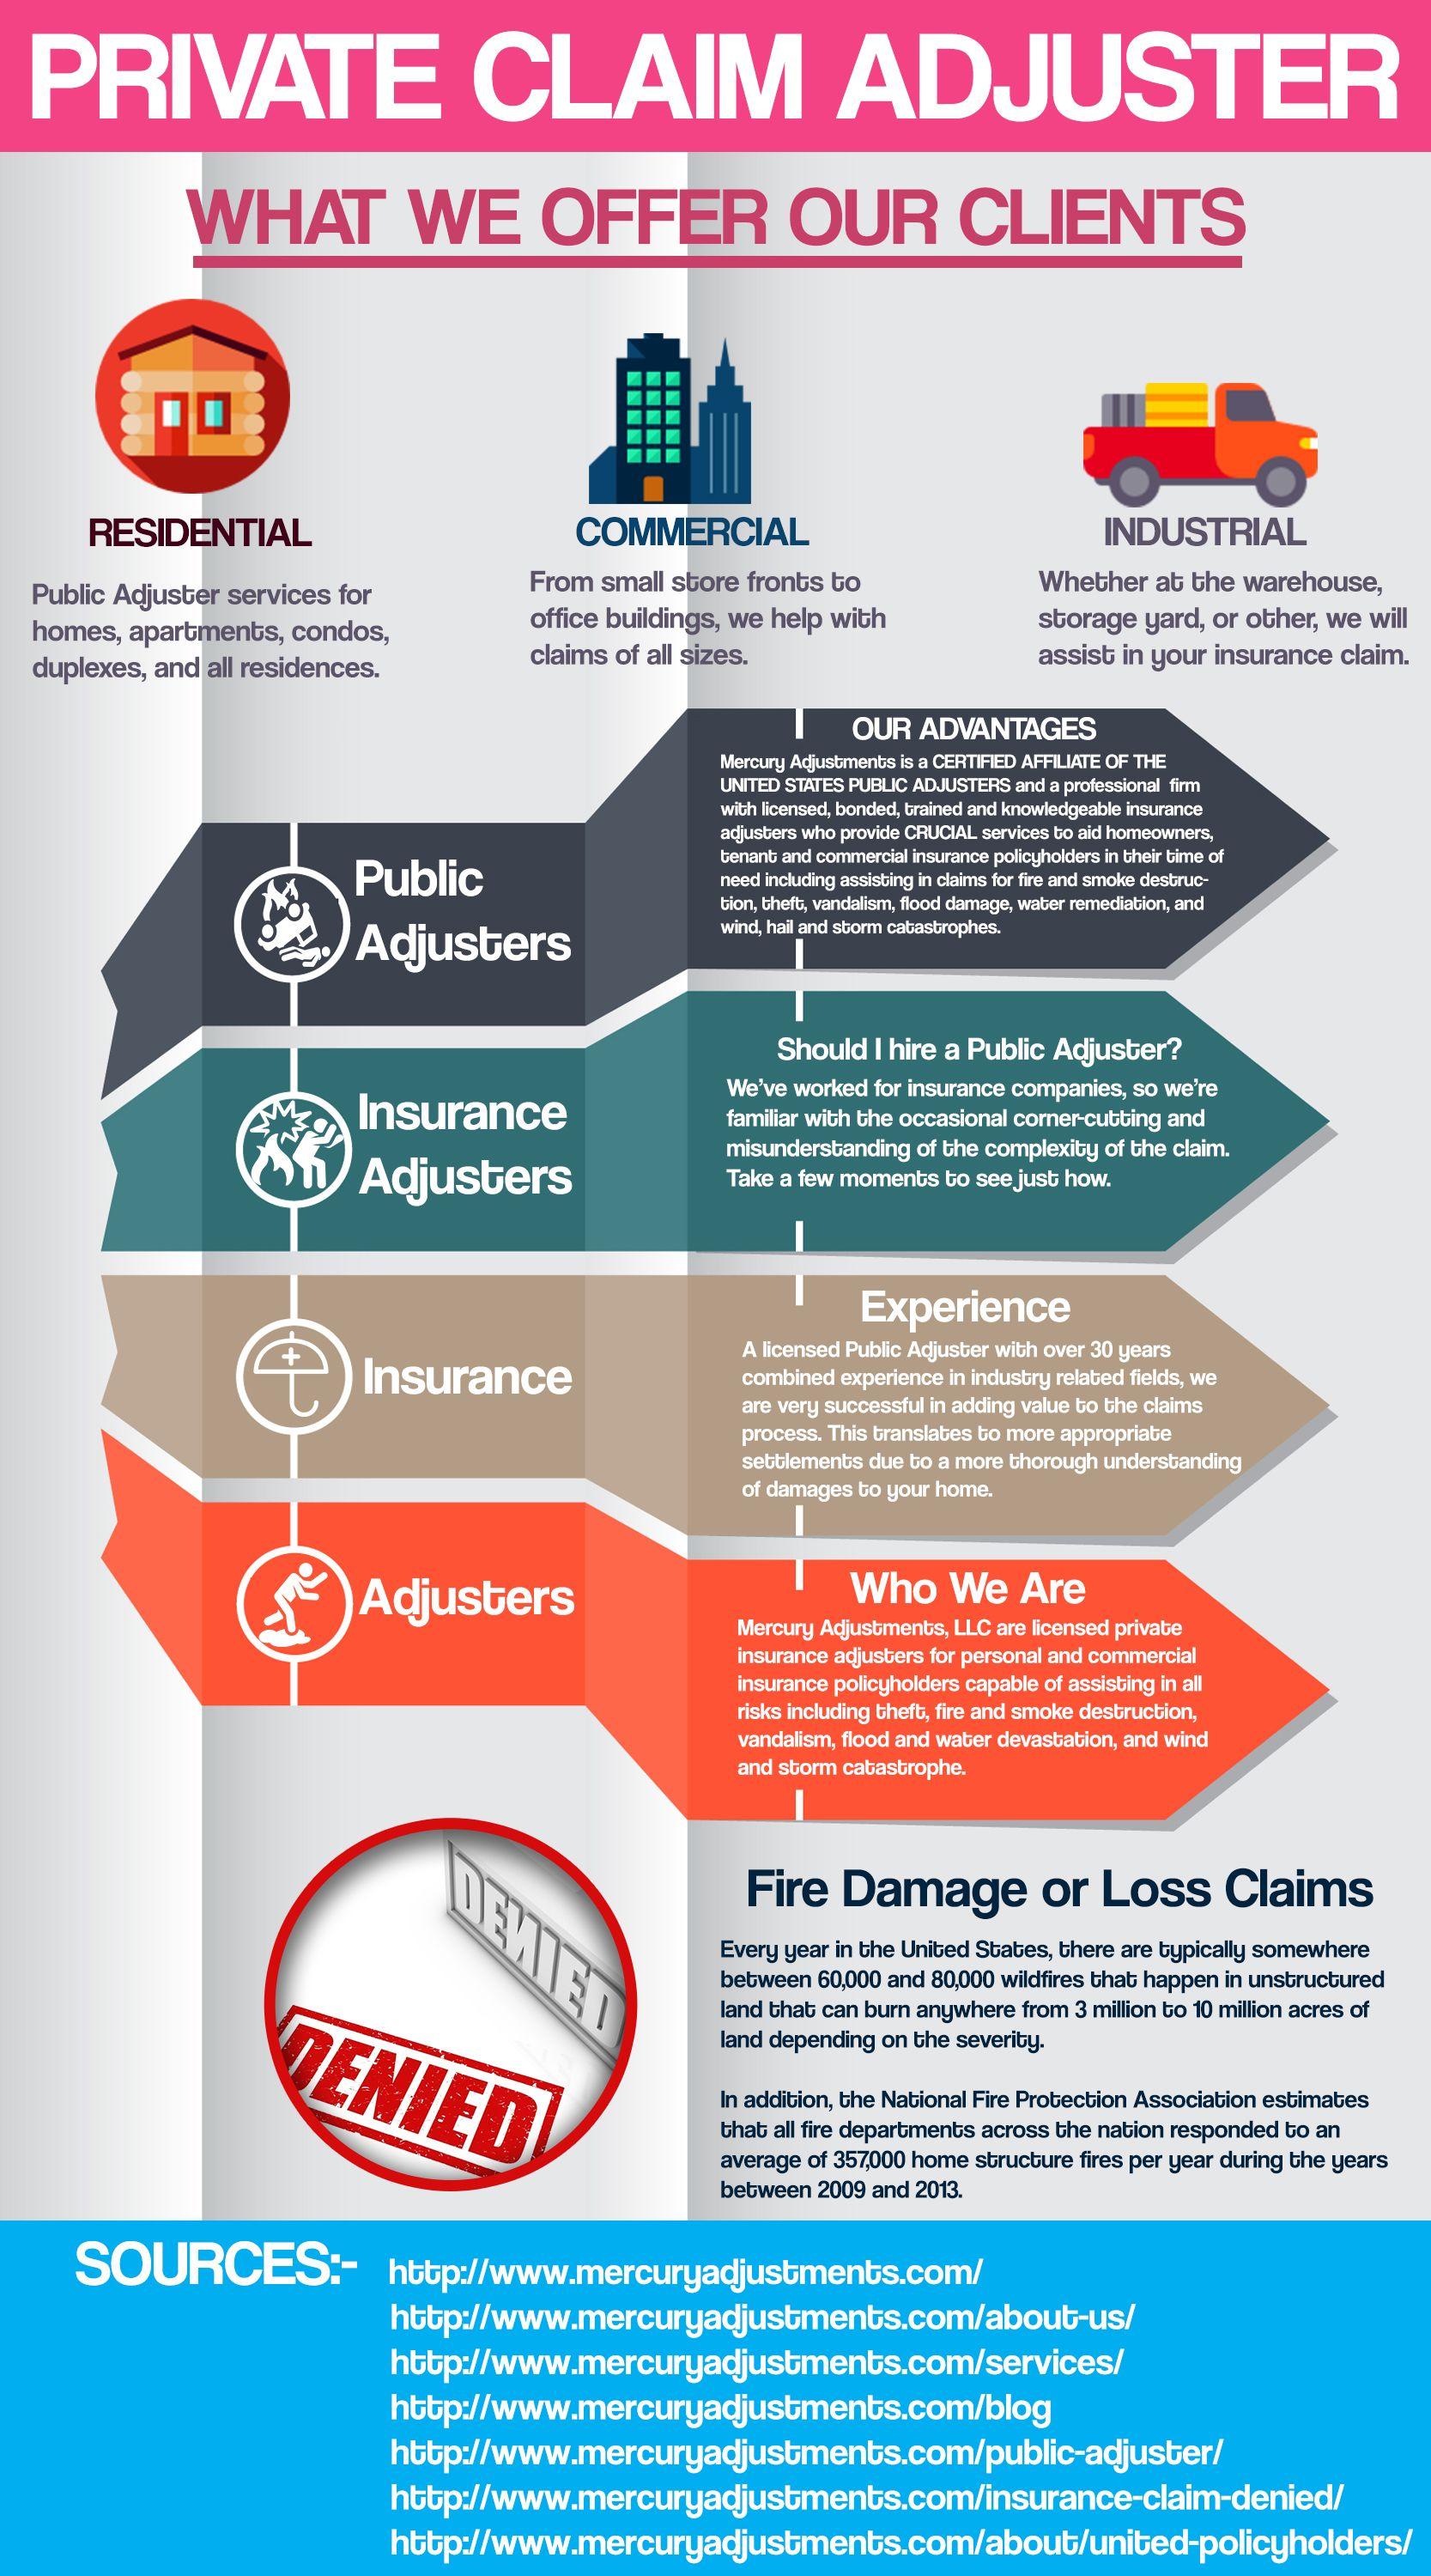 Mercury Adjustments Offer You Licensed Public Insurance Adjusters